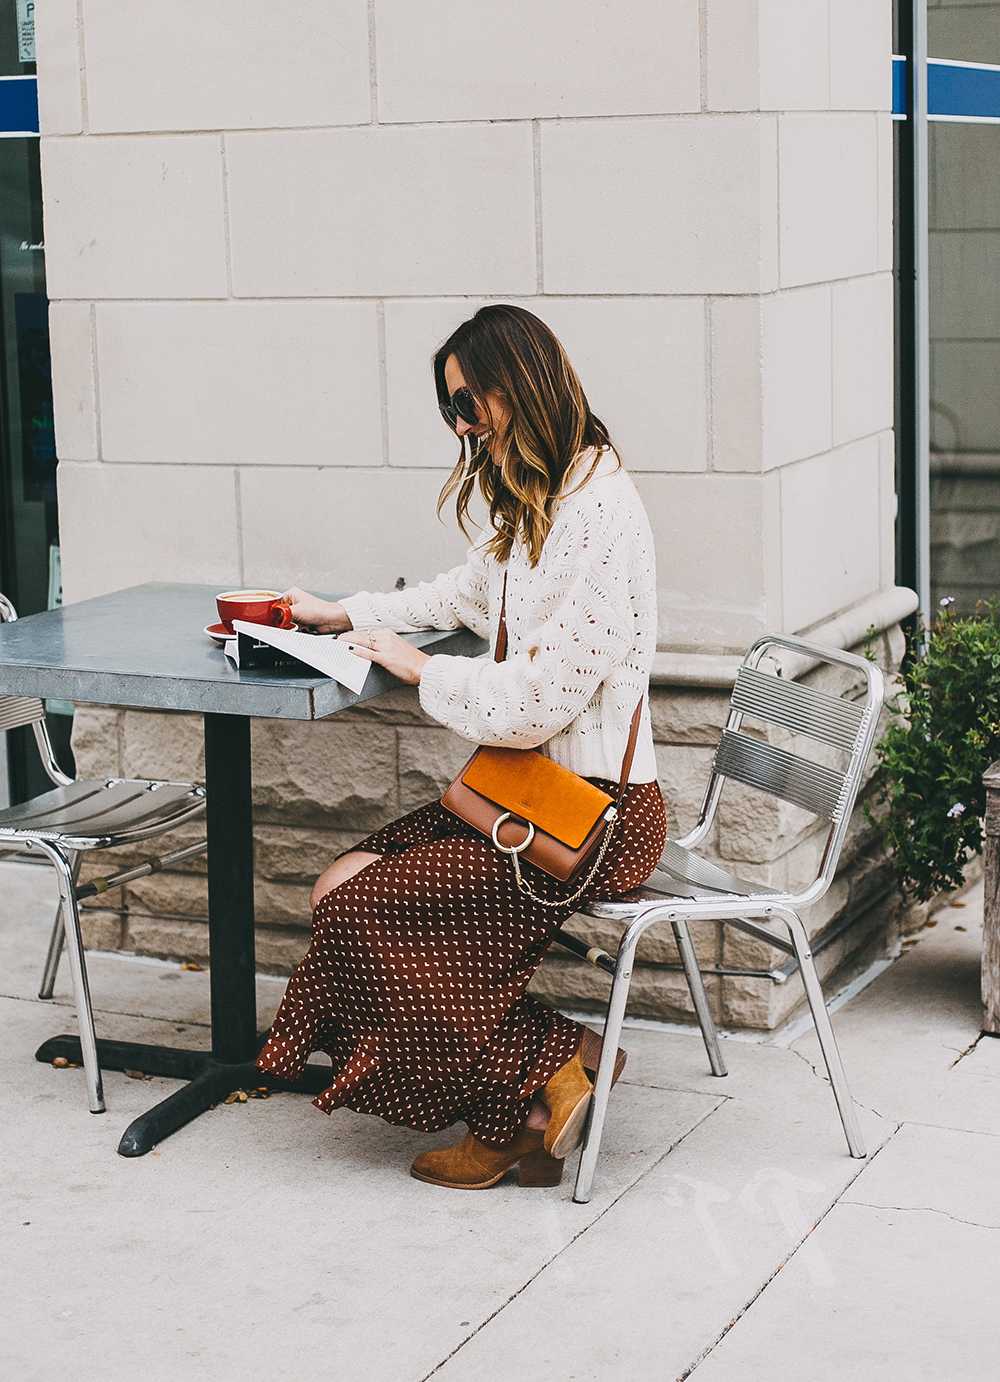 livvyland-crate-joy-coffee-classic-novel-dress-layered-sweater-austin-texas-fashion-blogger-1